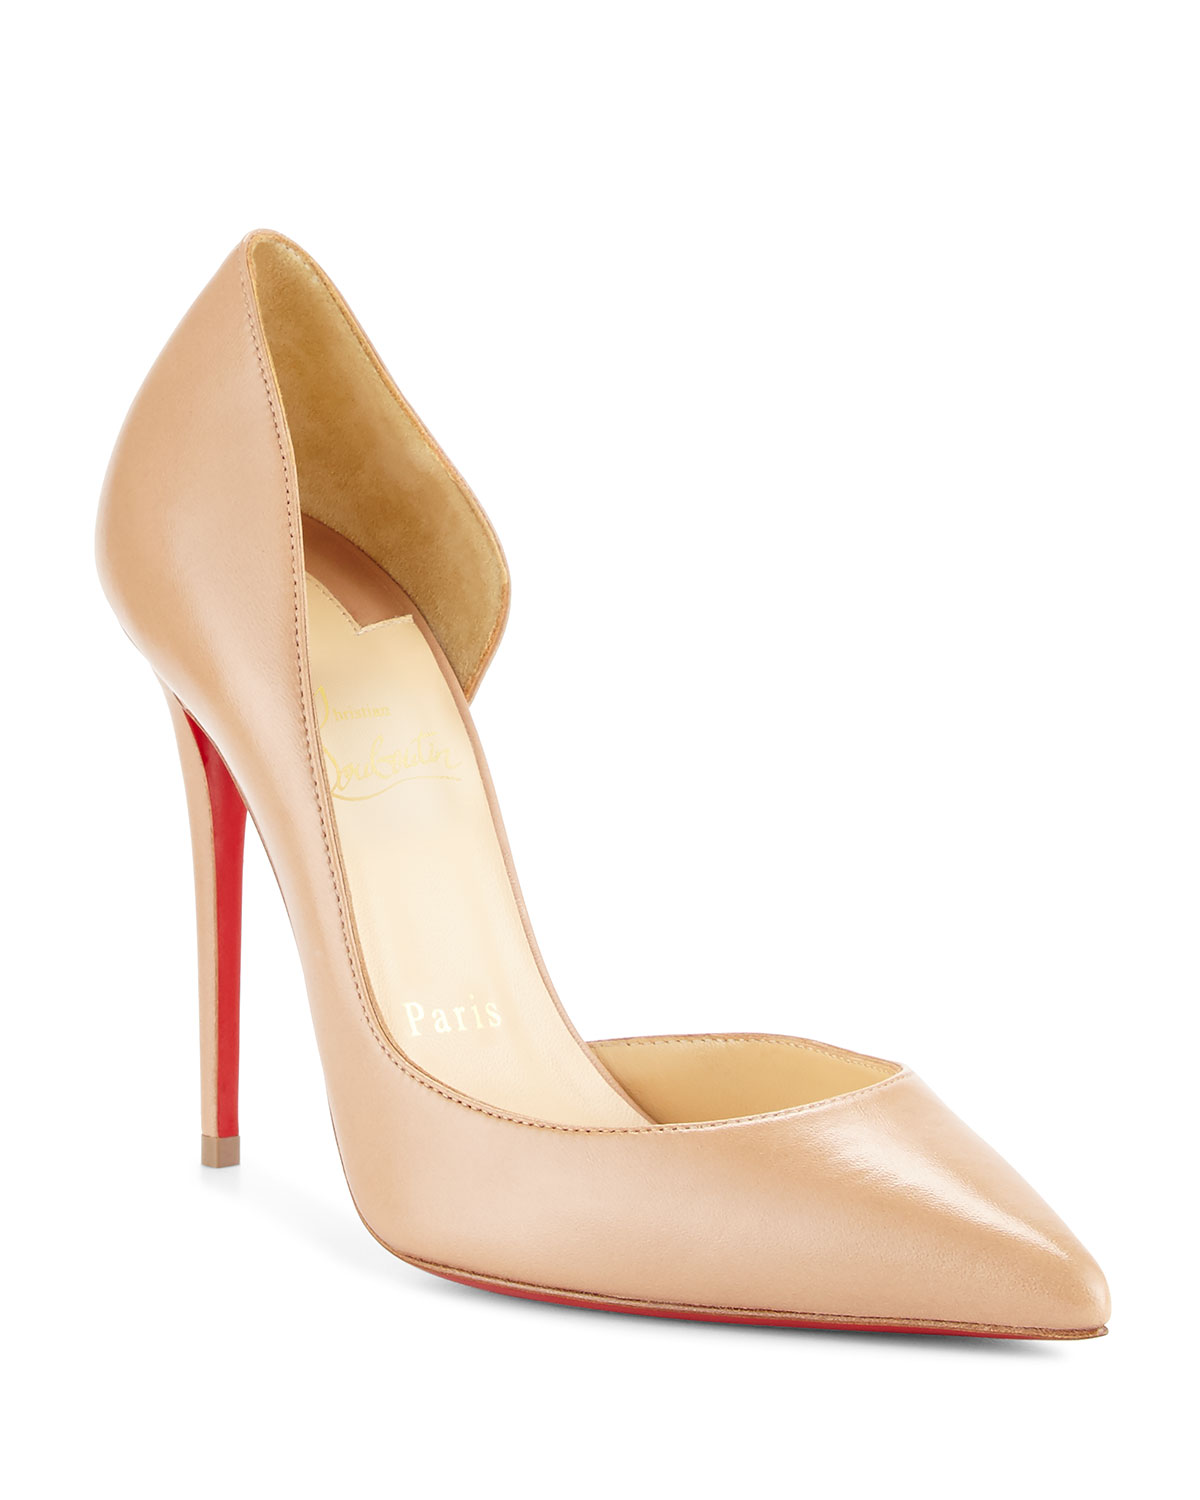 be9db209d0ed Christian Louboutin Iriza Half-d Orsay 100mm Red Sole Pump